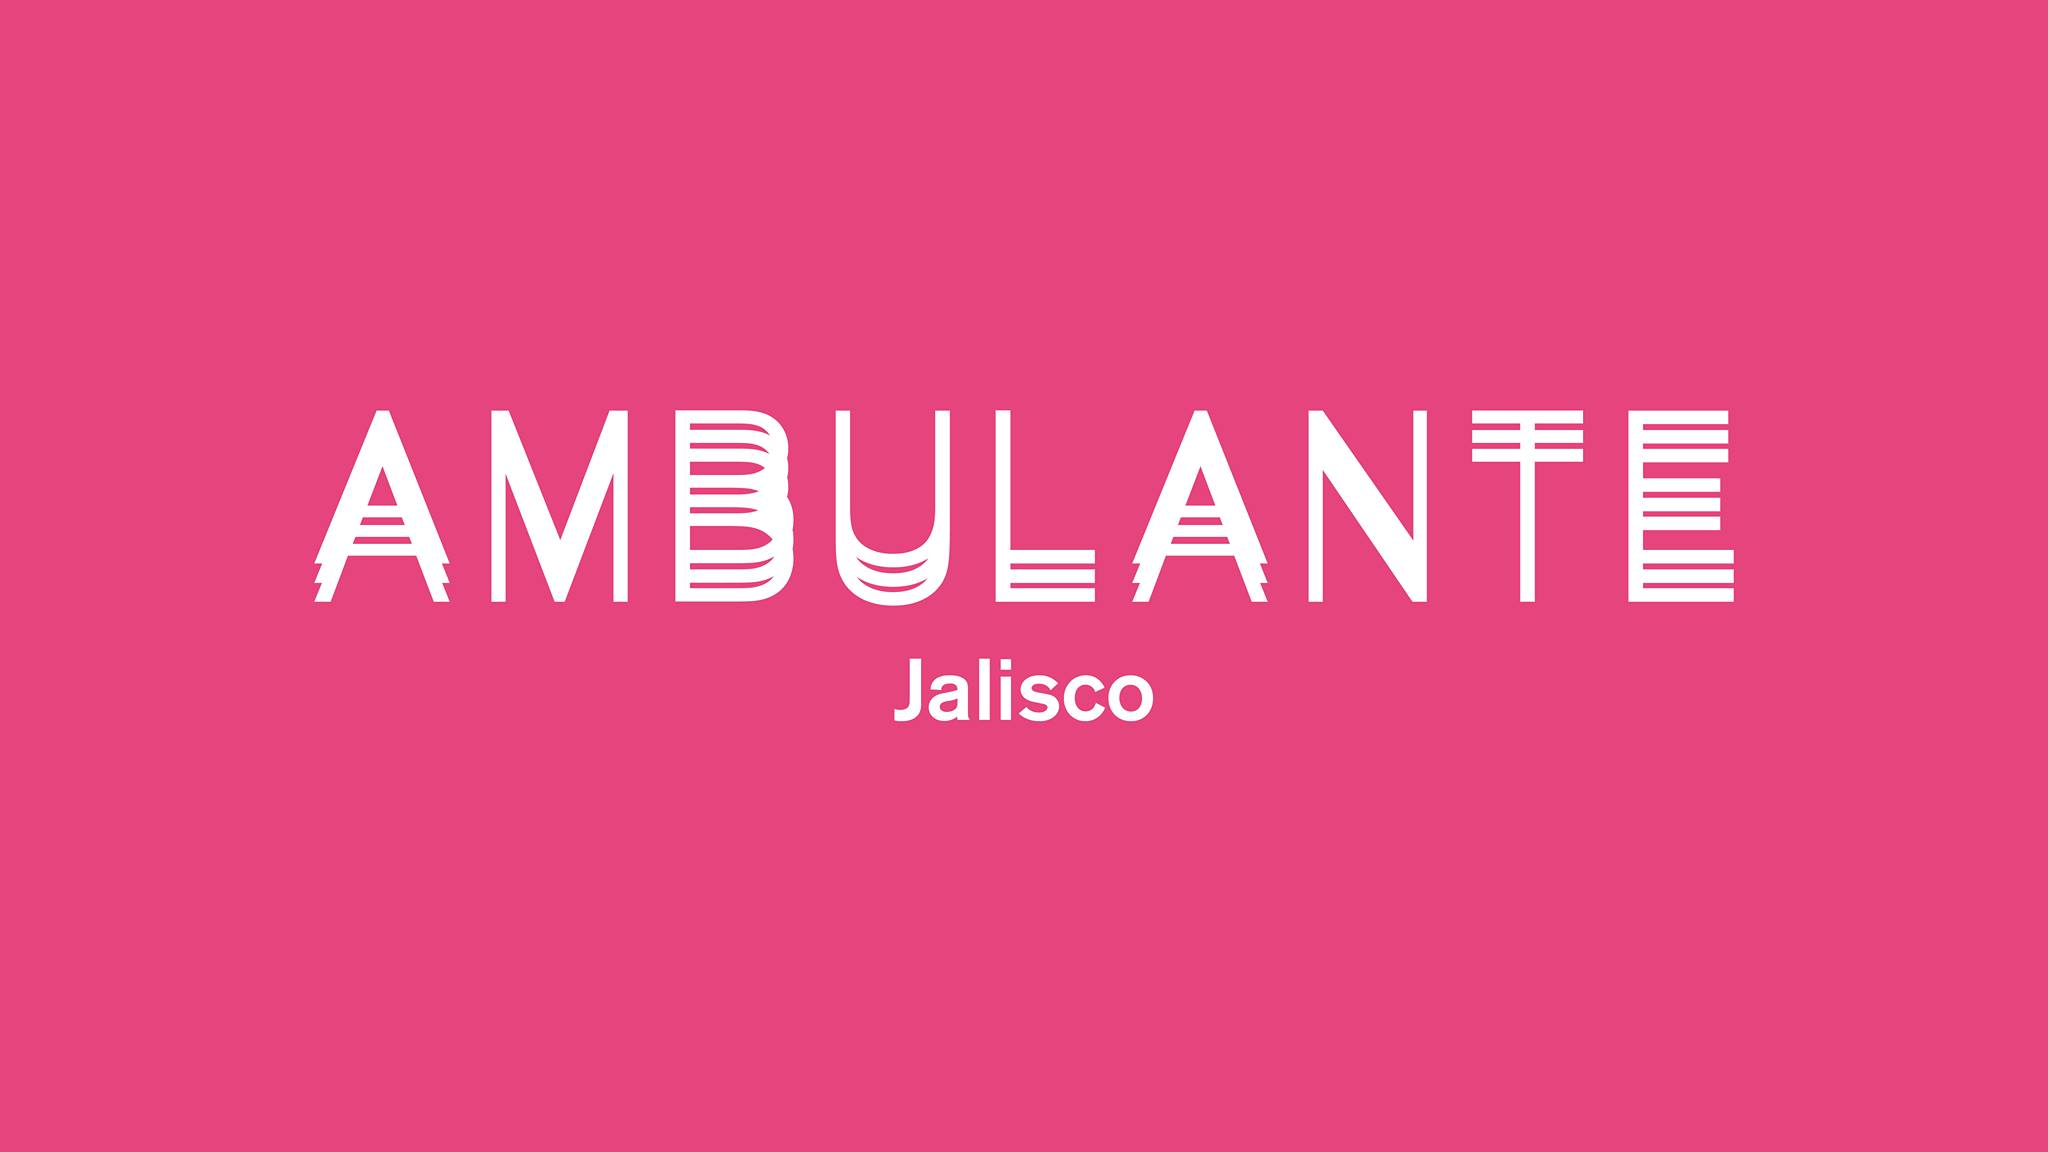 Ambulante, Gira de Documentales 2018, del 5 al 12 de Abril en Jalisco